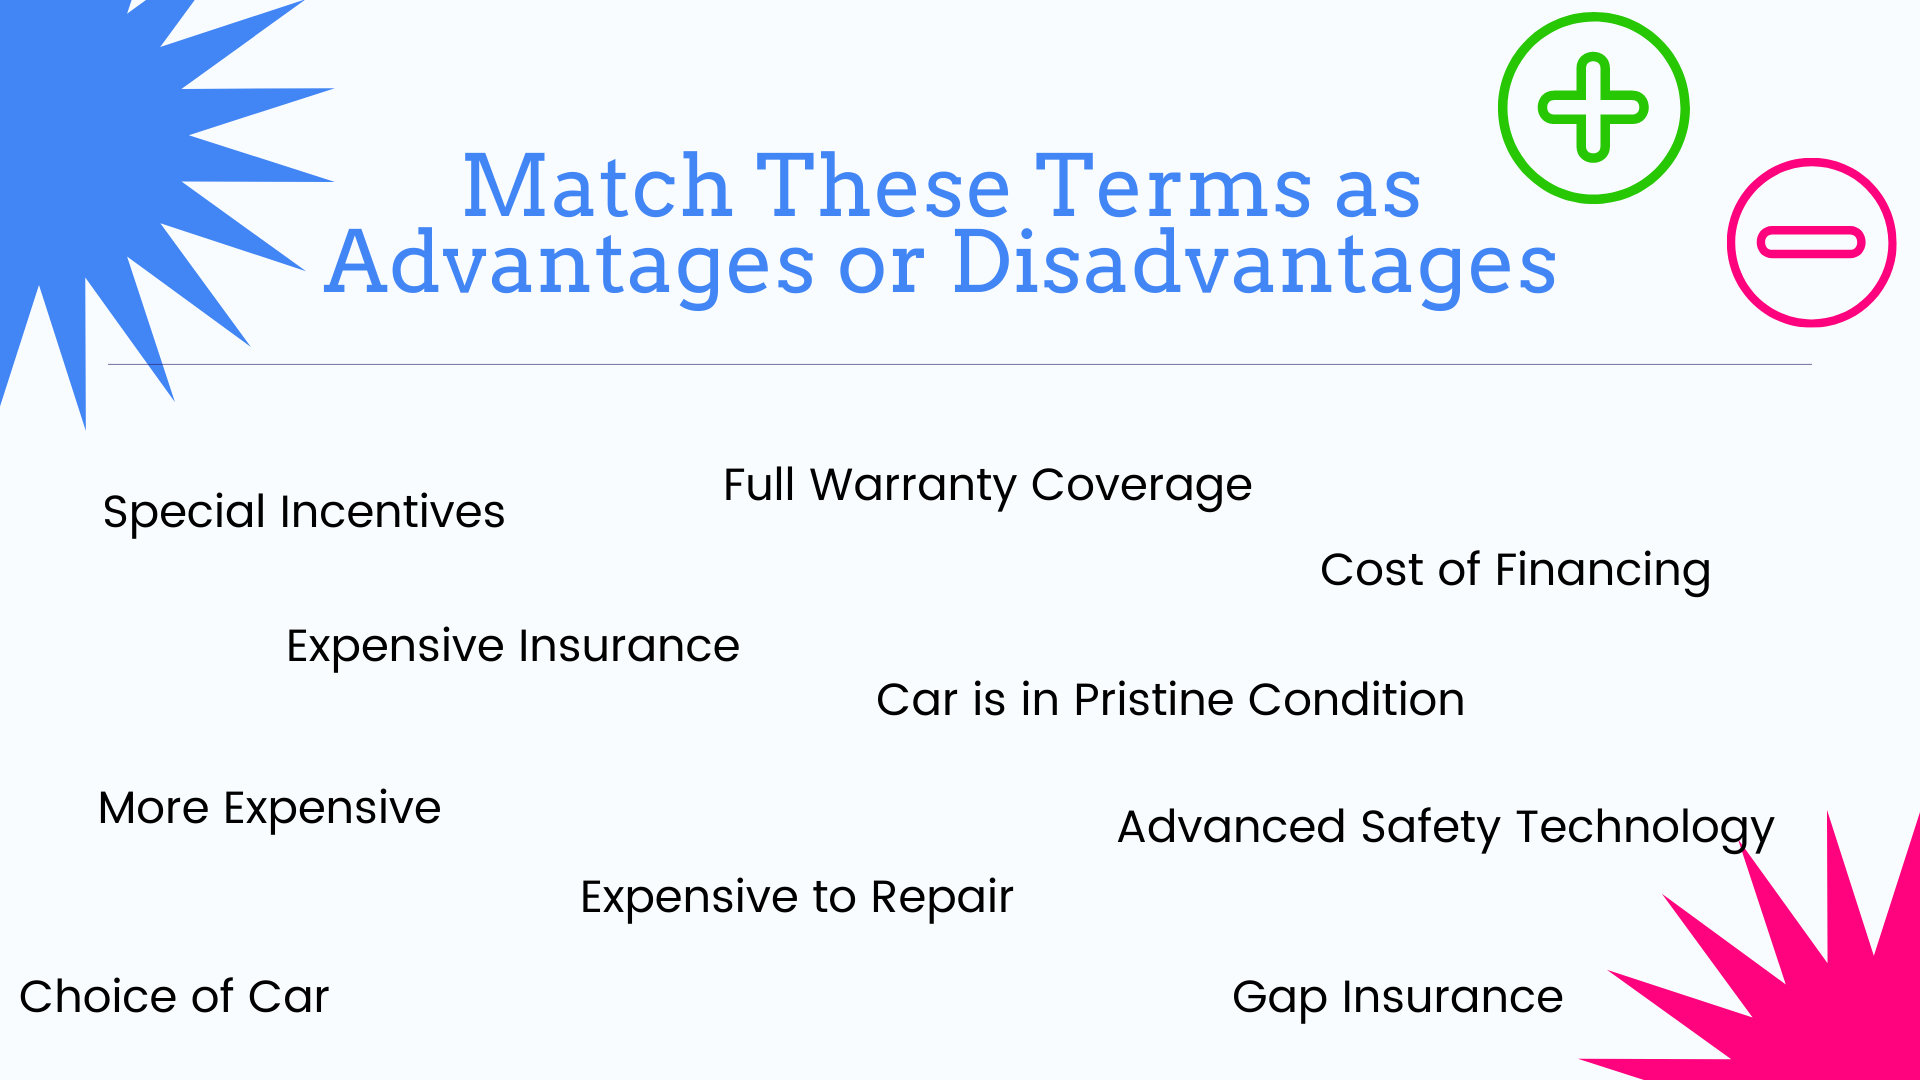 Match These Terms as Advantages or Disadvantages. 1: Special Incentives. 2: Full Warranty Coverage. 3: Cost of Financing. 4: Expensive Insurance. 5: Car is in Pristine Condition. 6: More Expensive. 7: Advanced Safety Technology. 8: Expensive to Repair. 9: Choice of Car. 10: Gap Insurance